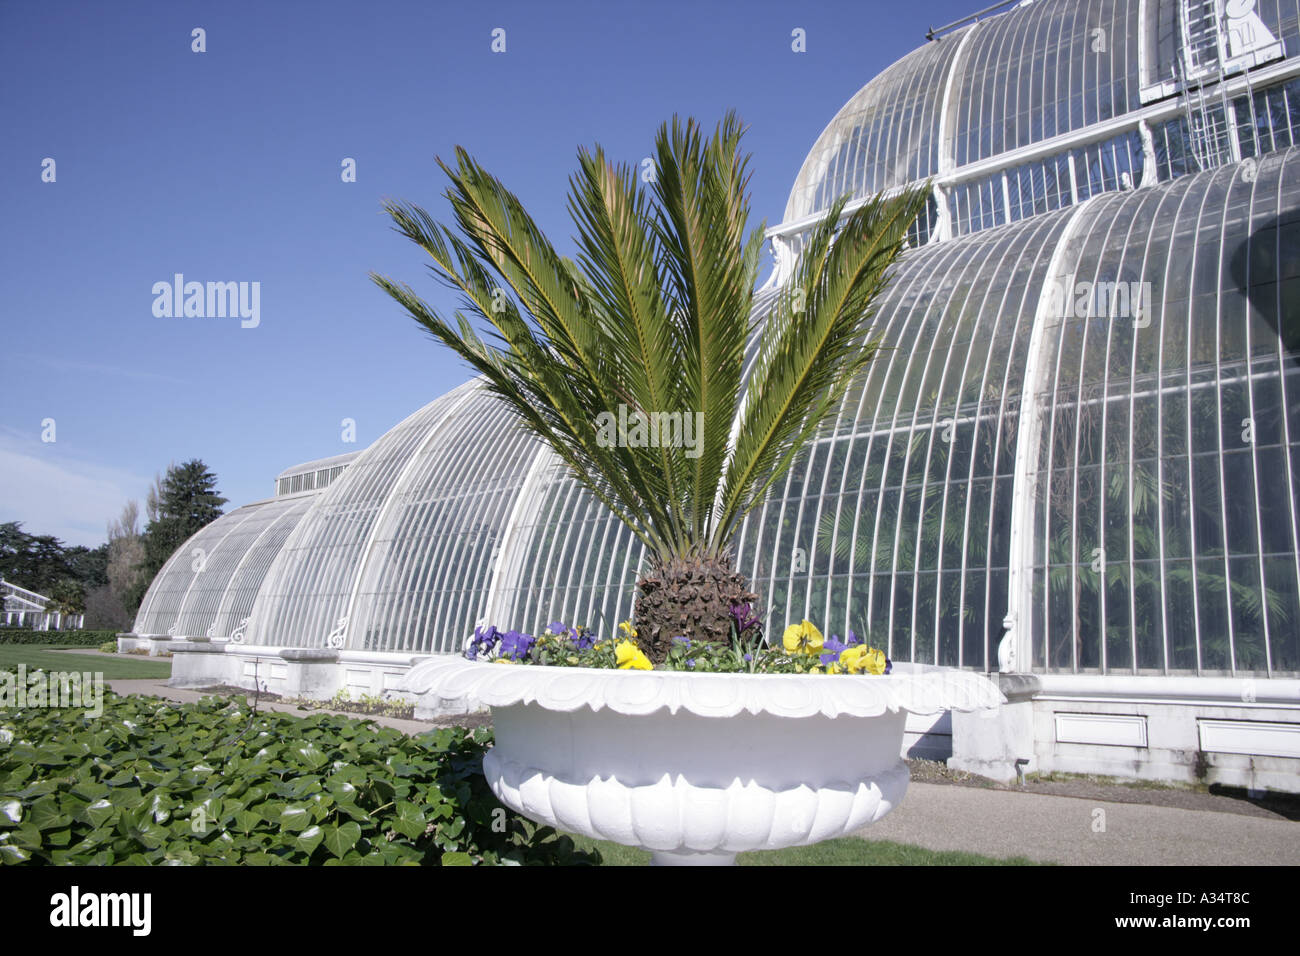 The Royal Botanic Gardens Kew in the spring the Palm House - Stock Image